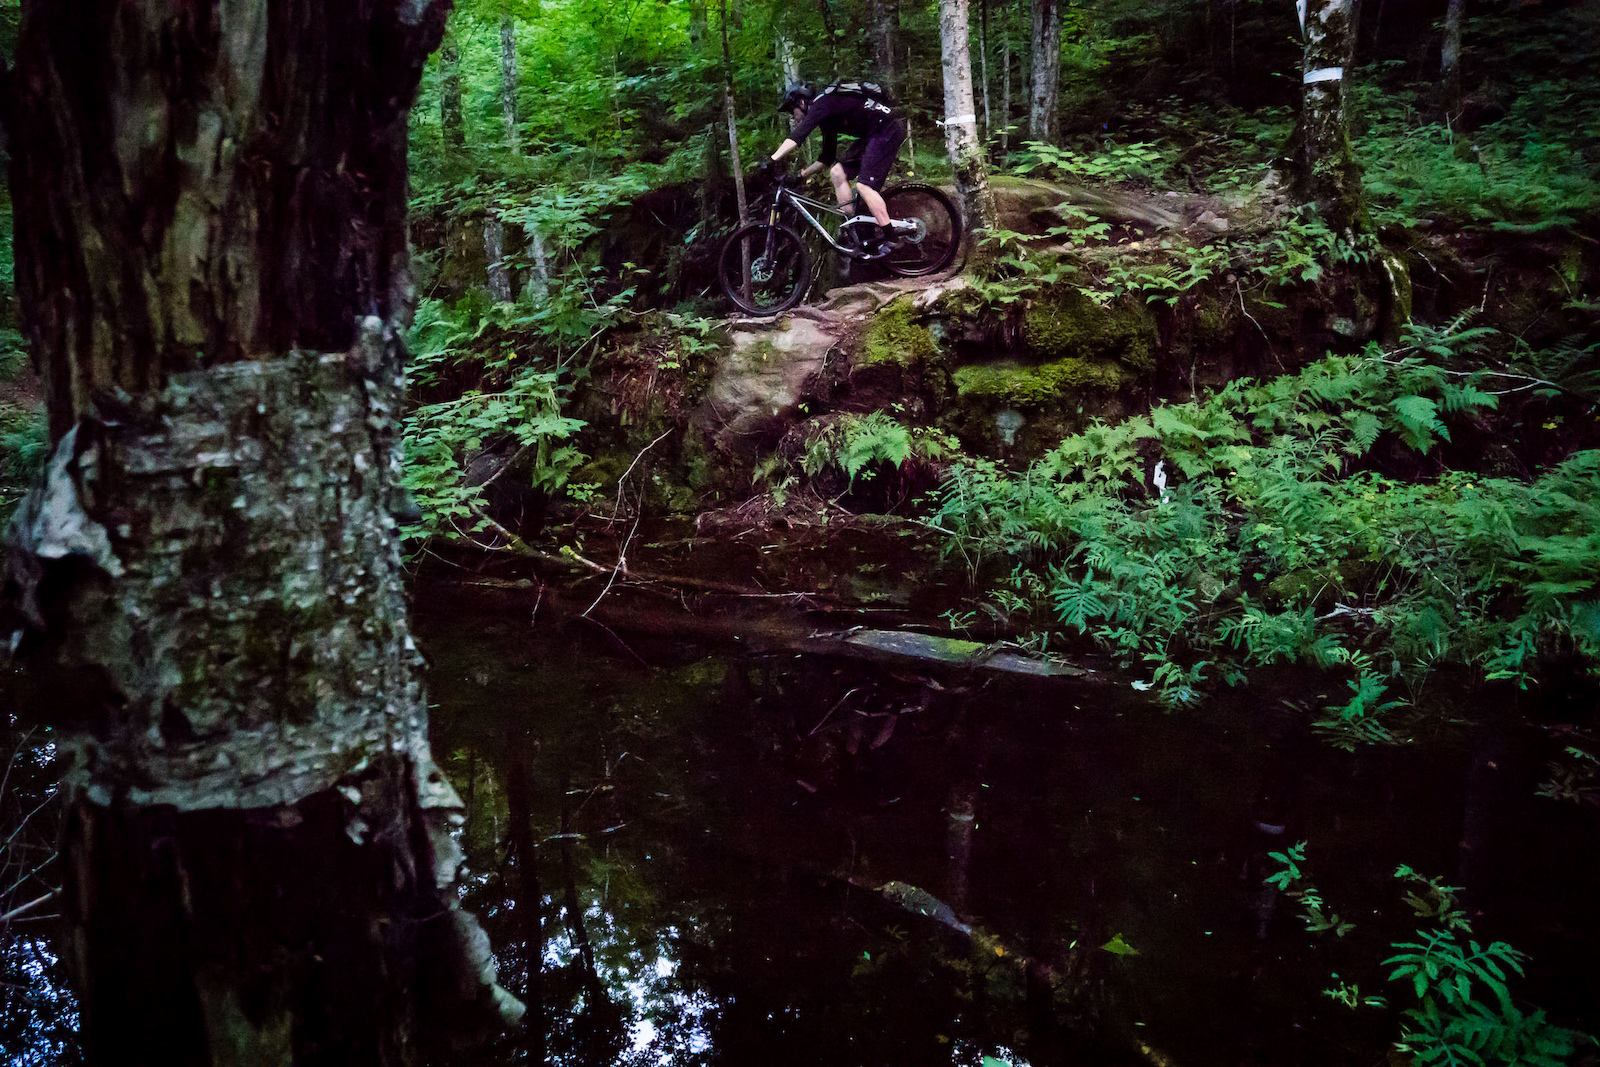 David tearing down one of the more Jurassic Park trails at Vall e Bras-du-Nord. PHOTO Ben Gavelda